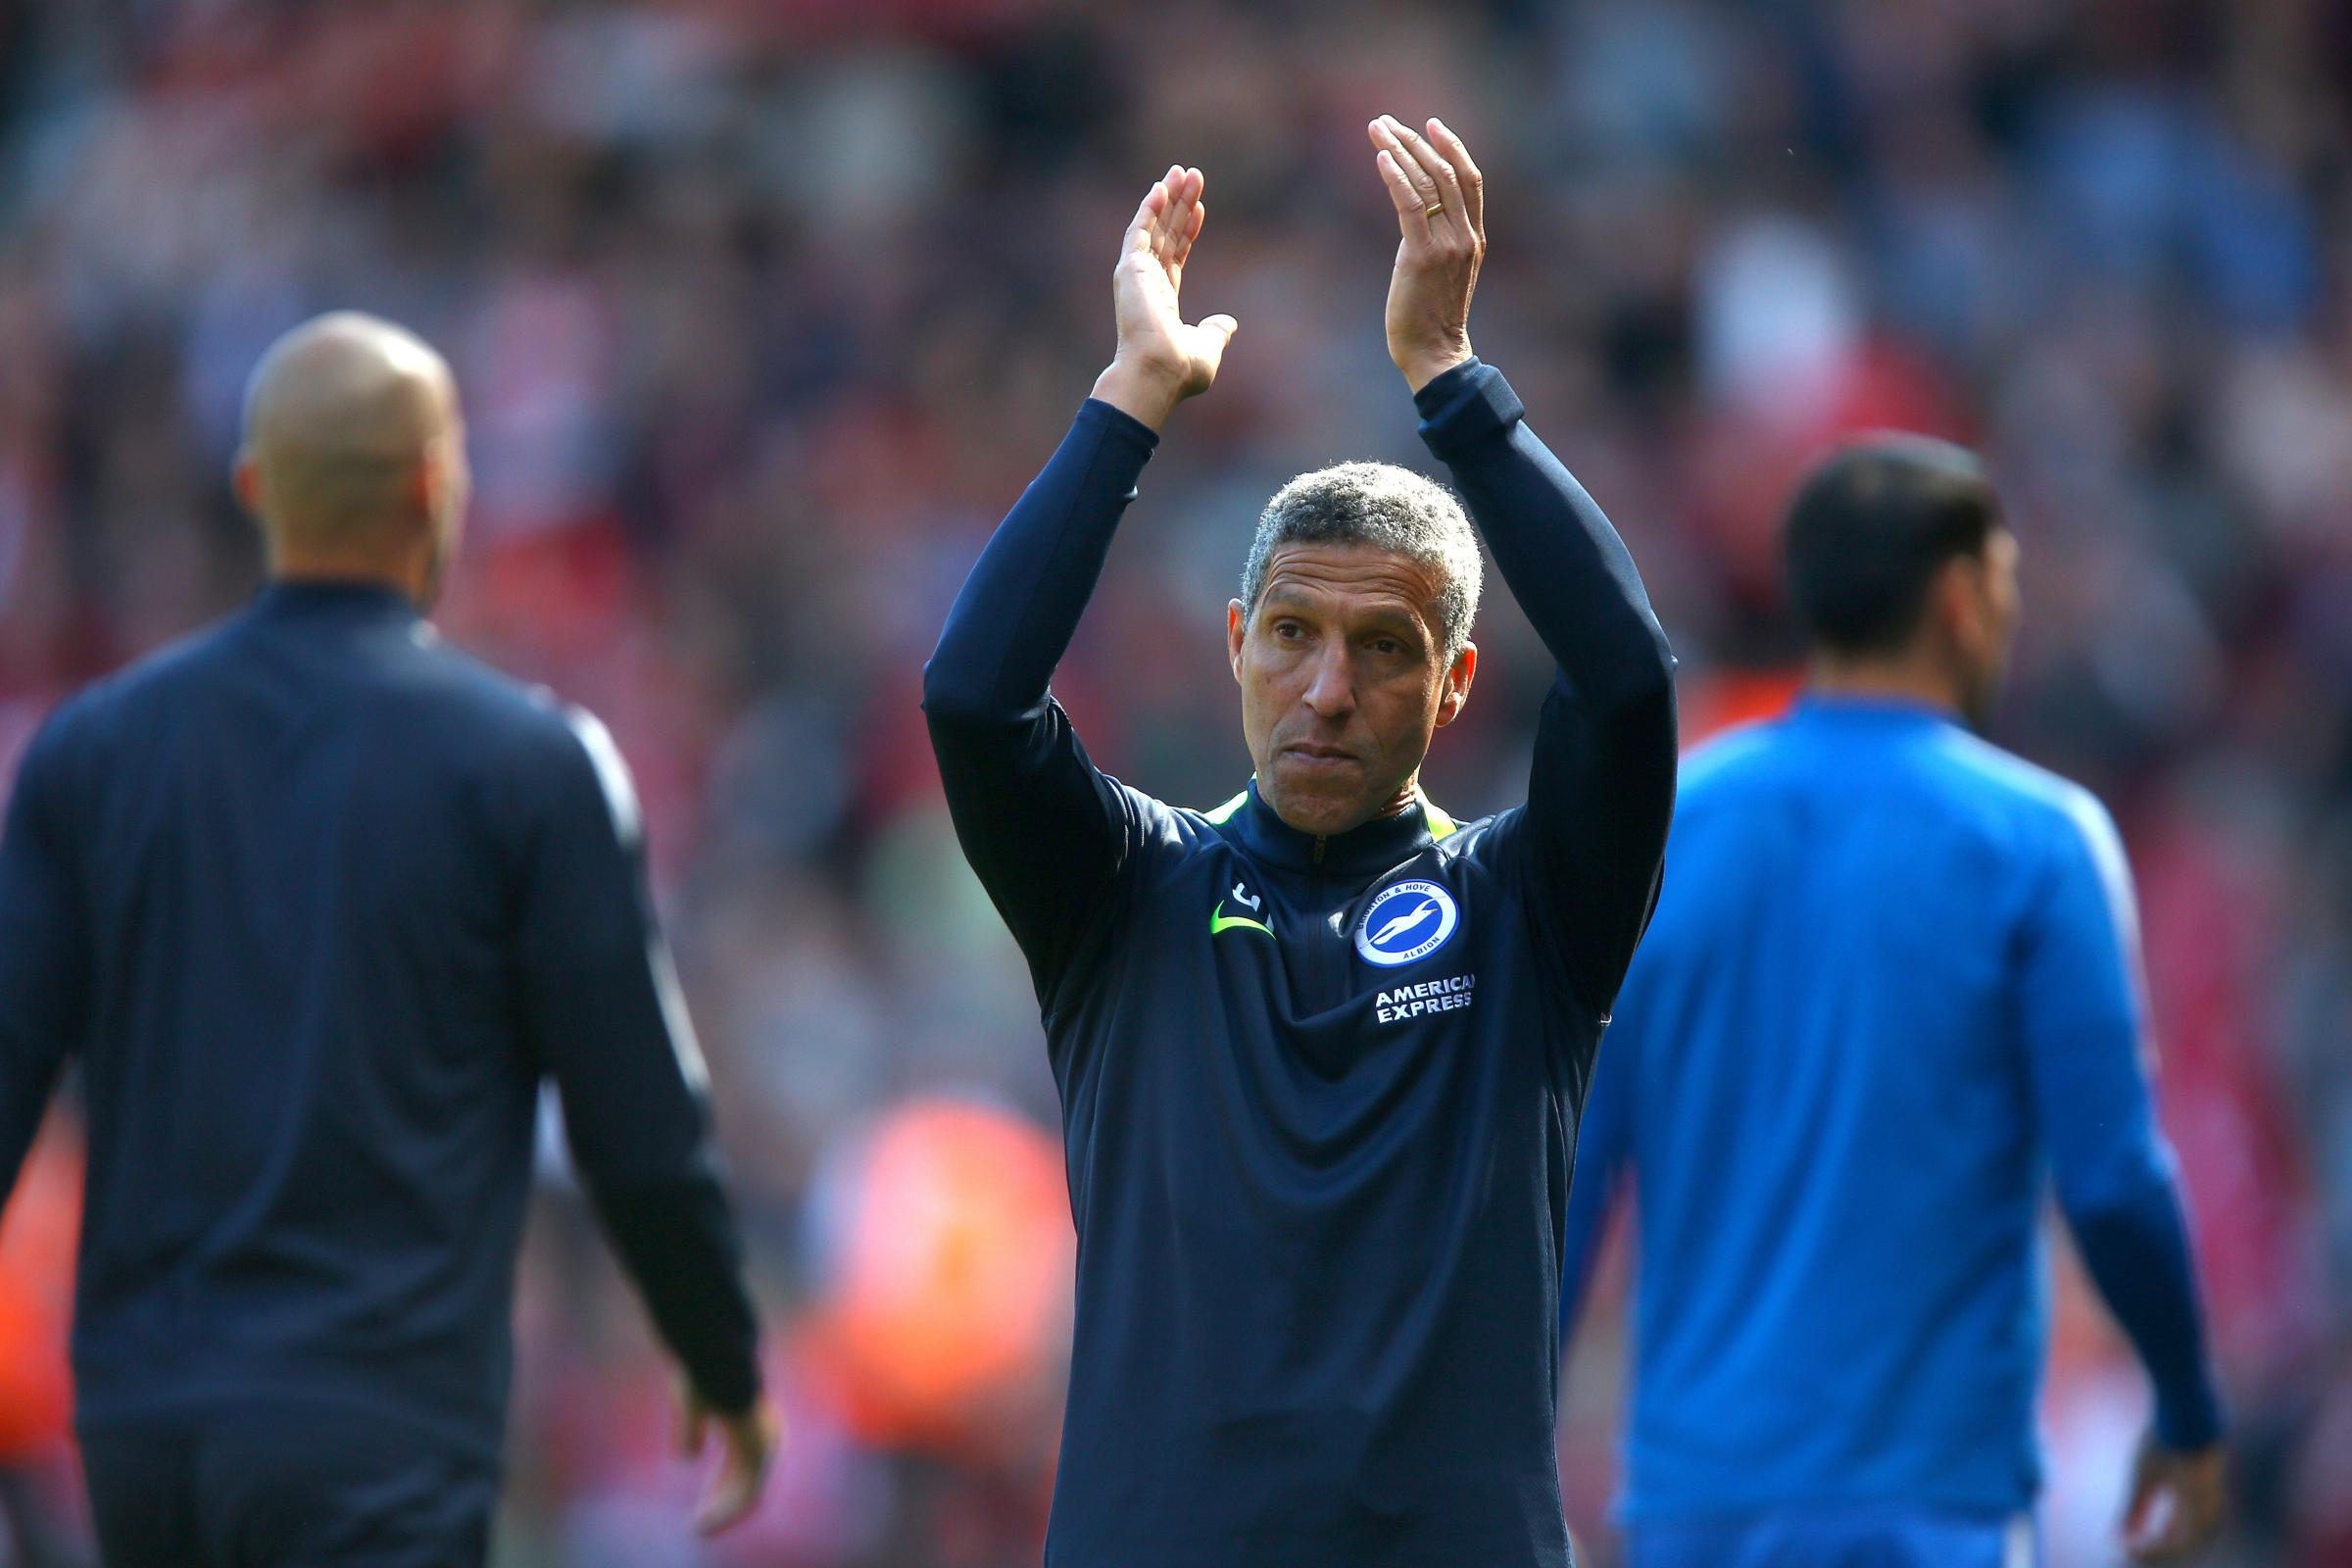 Brighton & Hove Albion manager Chris Hughton acknowledges the fans after the final whistle during the Premier League match at Anfield, Liverpool.